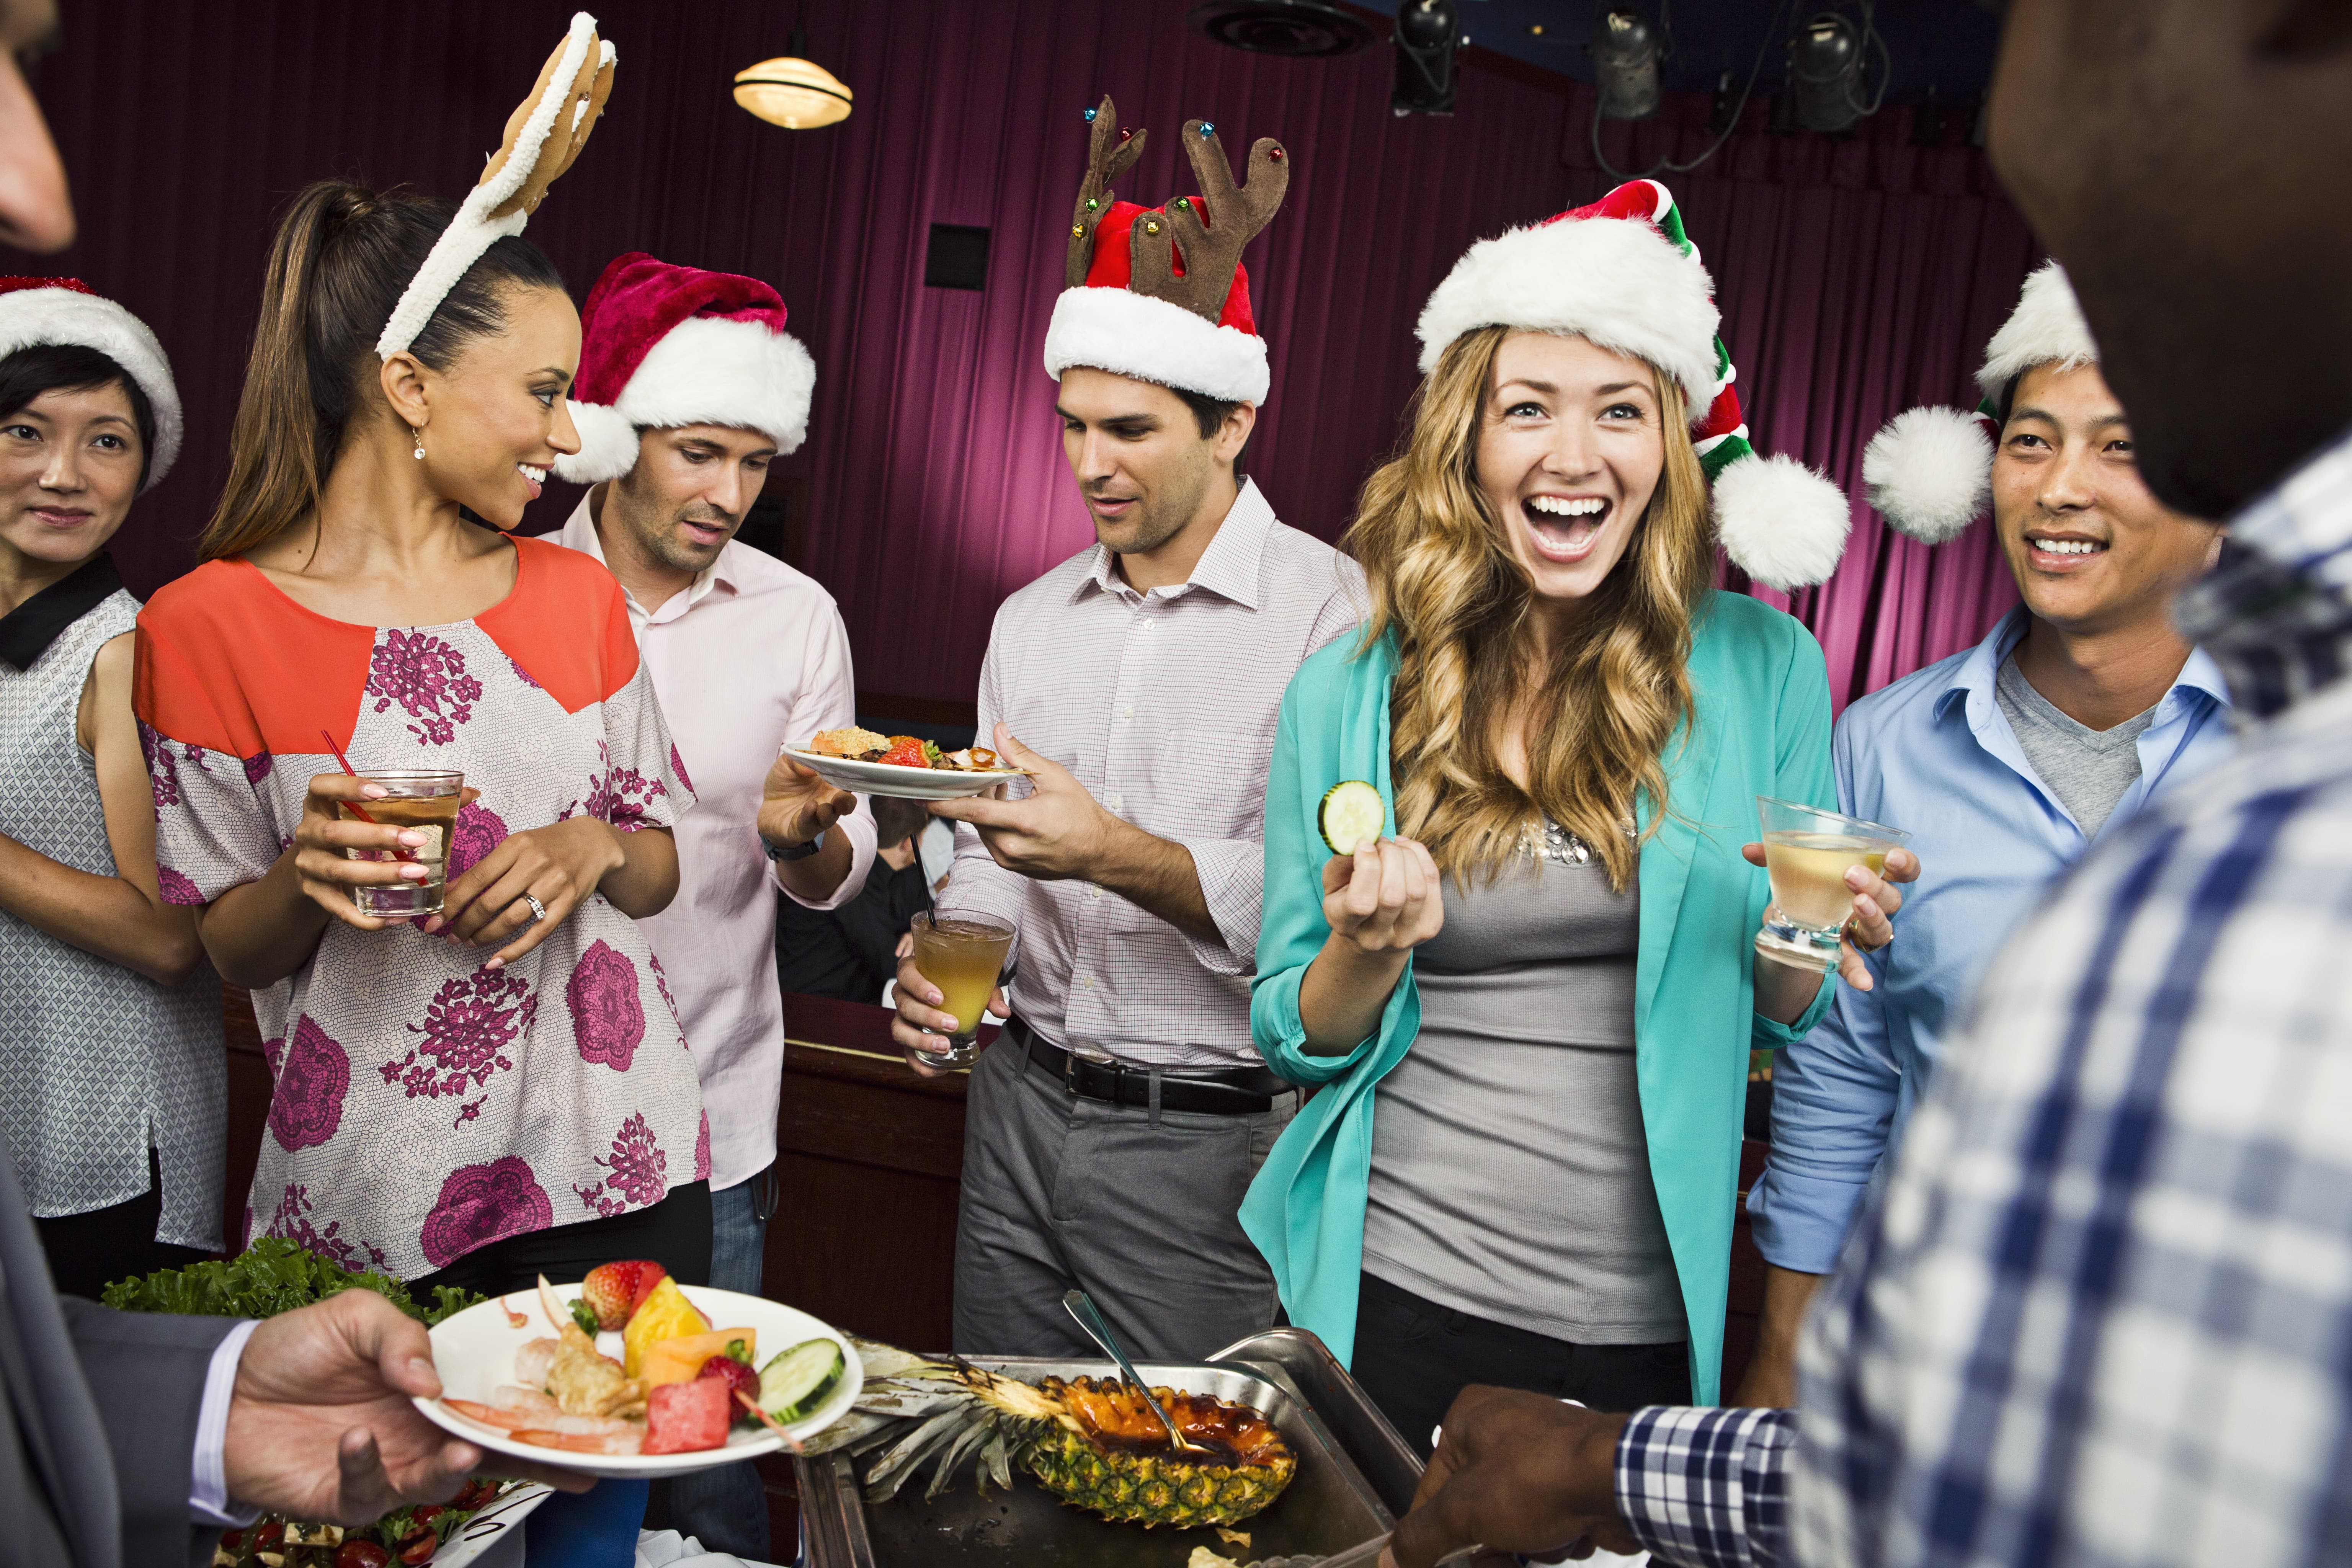 Holiday party celebrations in Santa hats